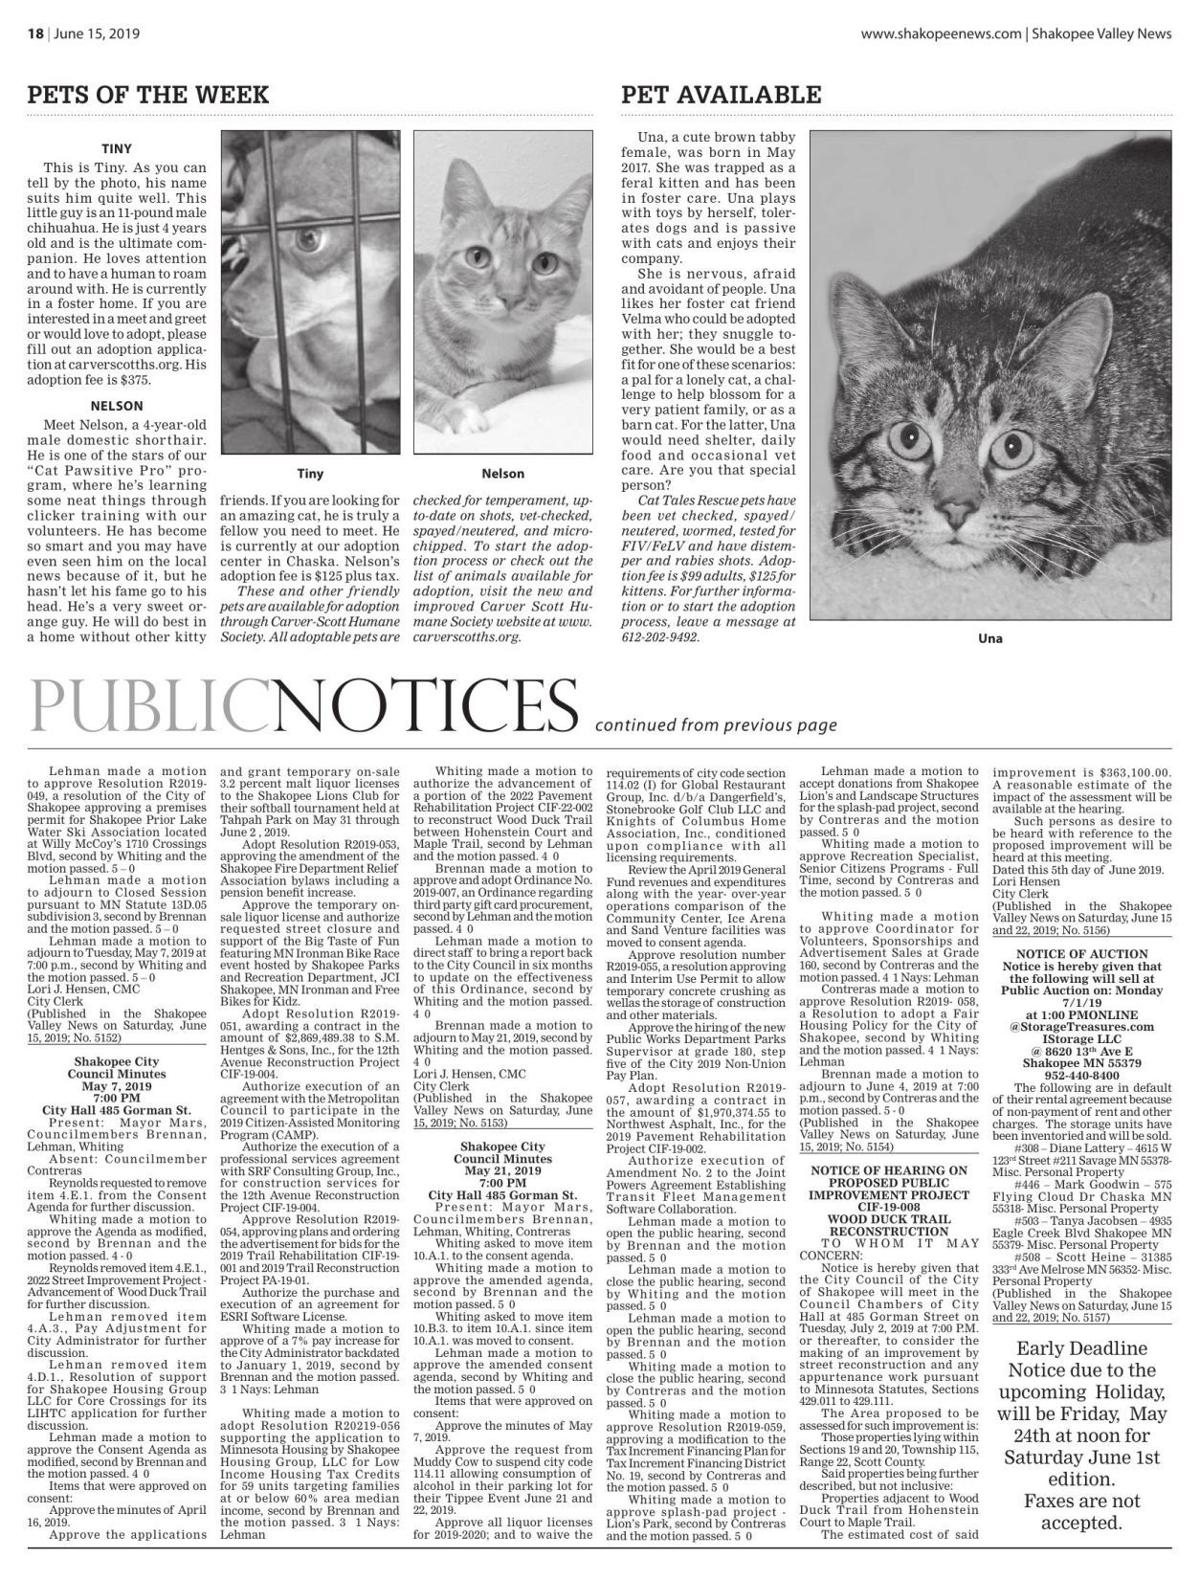 Public notices from the June 15, 2019 Shakopee Valley News